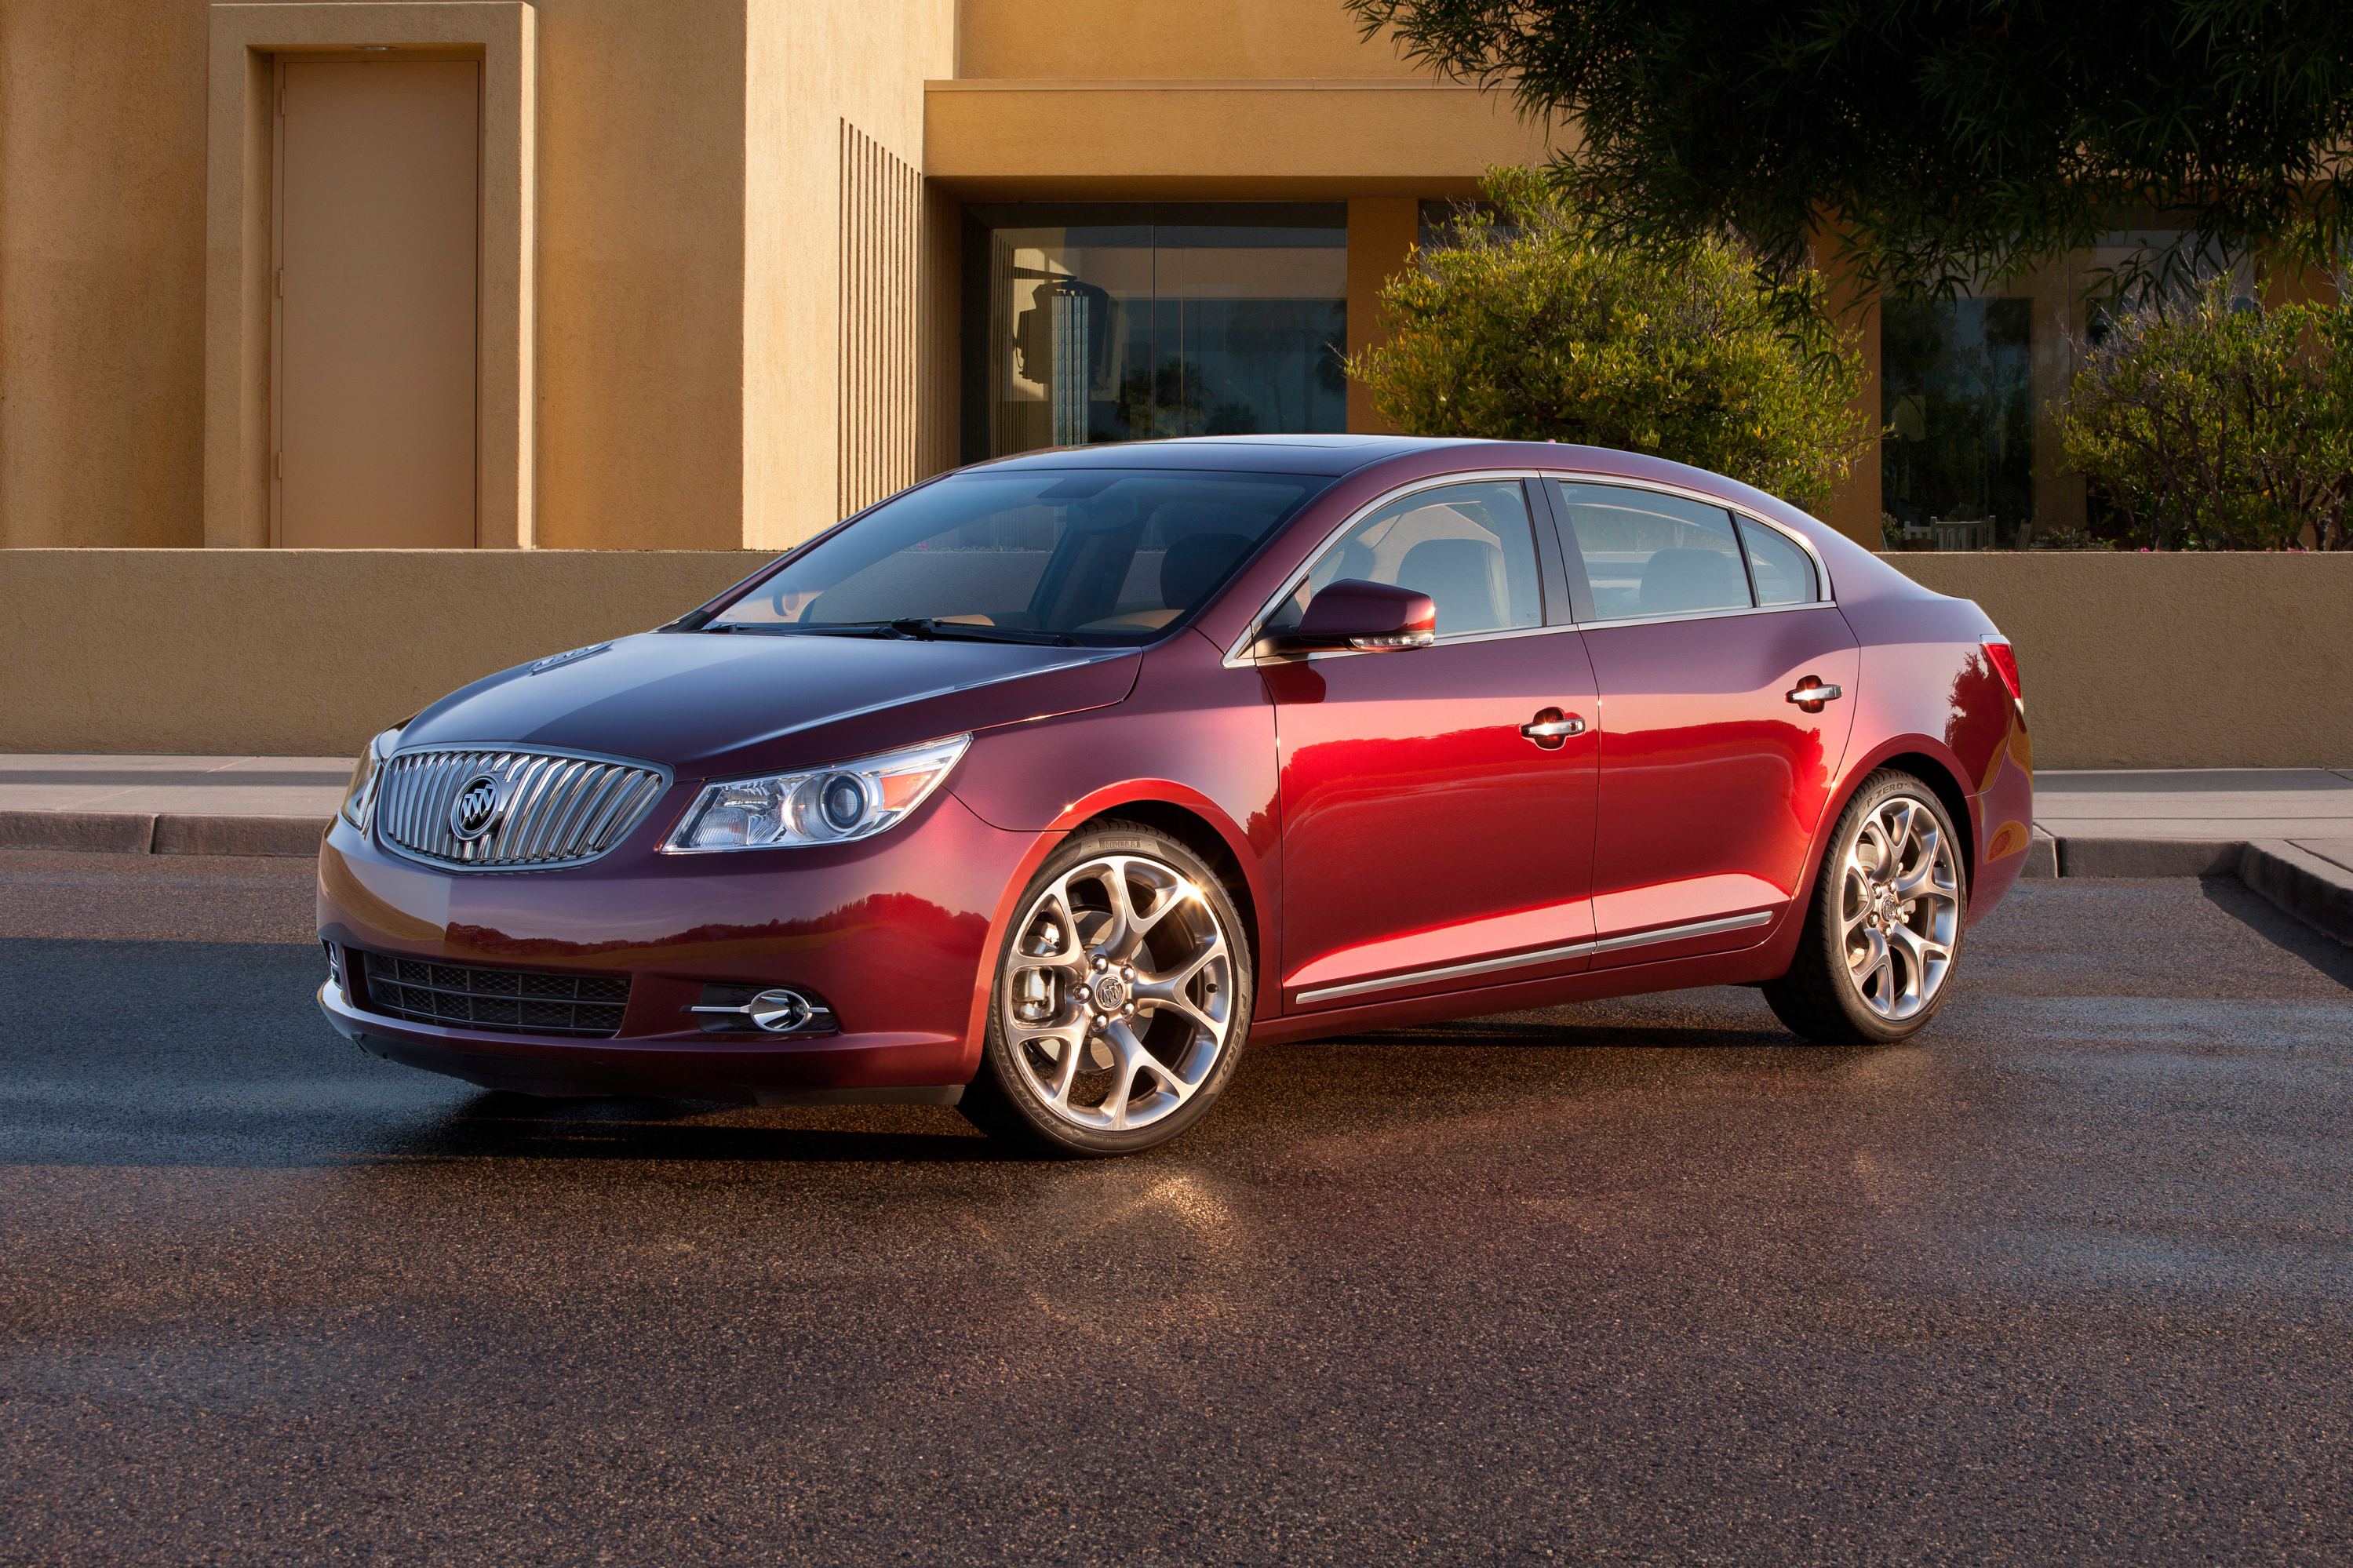 view and front buick motor eassist review rating lacrosse cars trend reviews